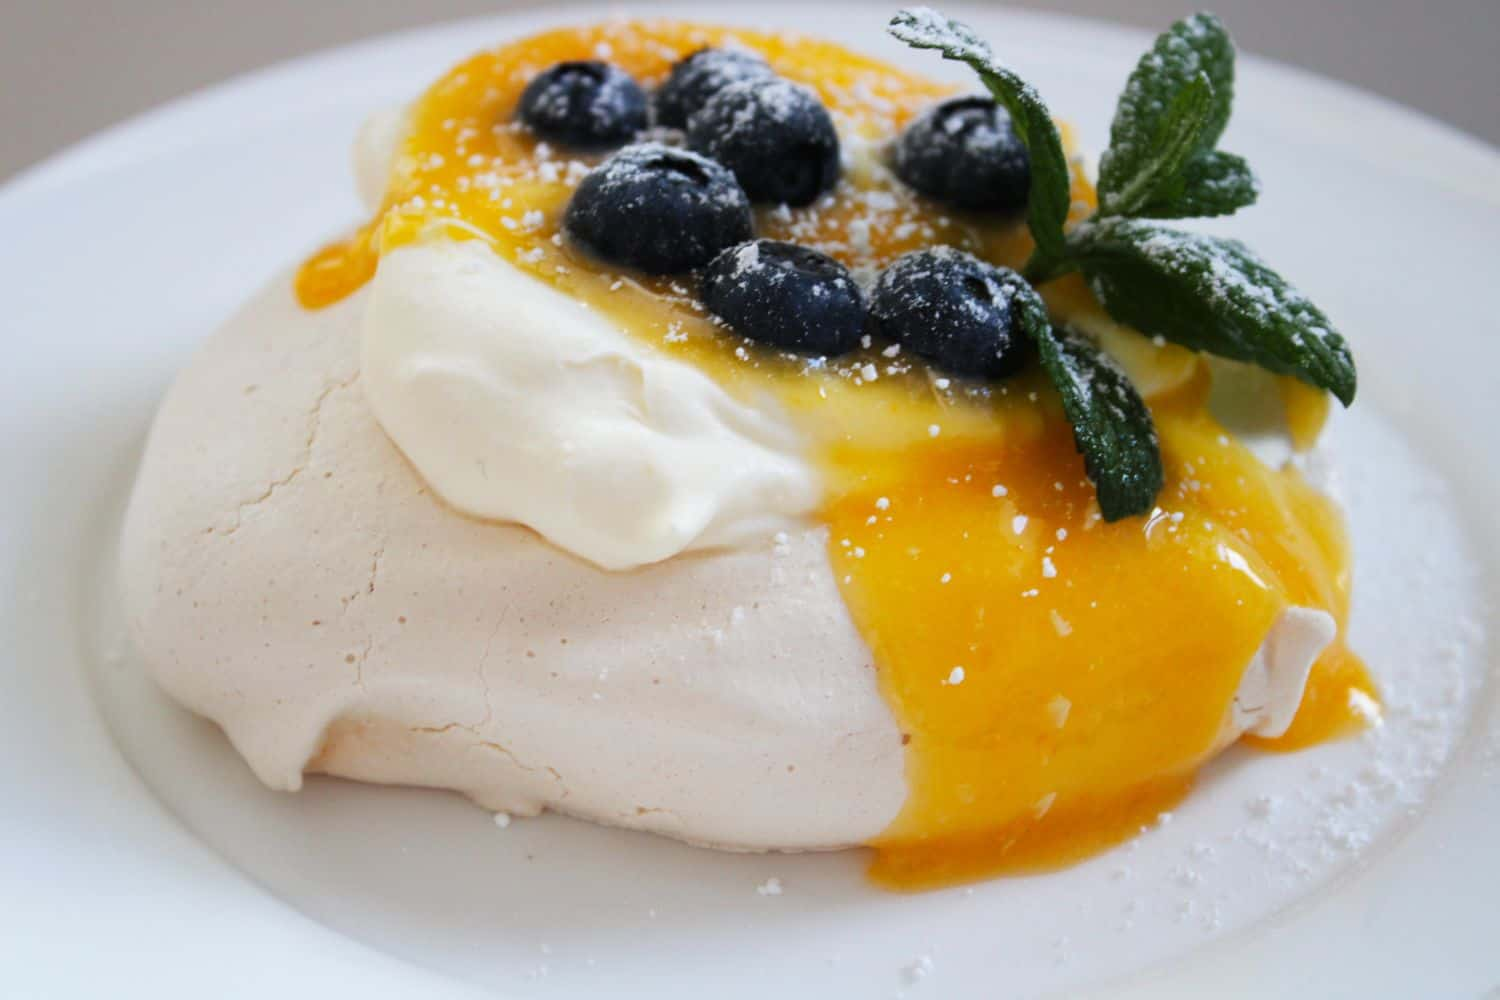 One Meringue on a white plate, topped with cream, lemon curd and blueberries. Garnished with a sprig of mint.